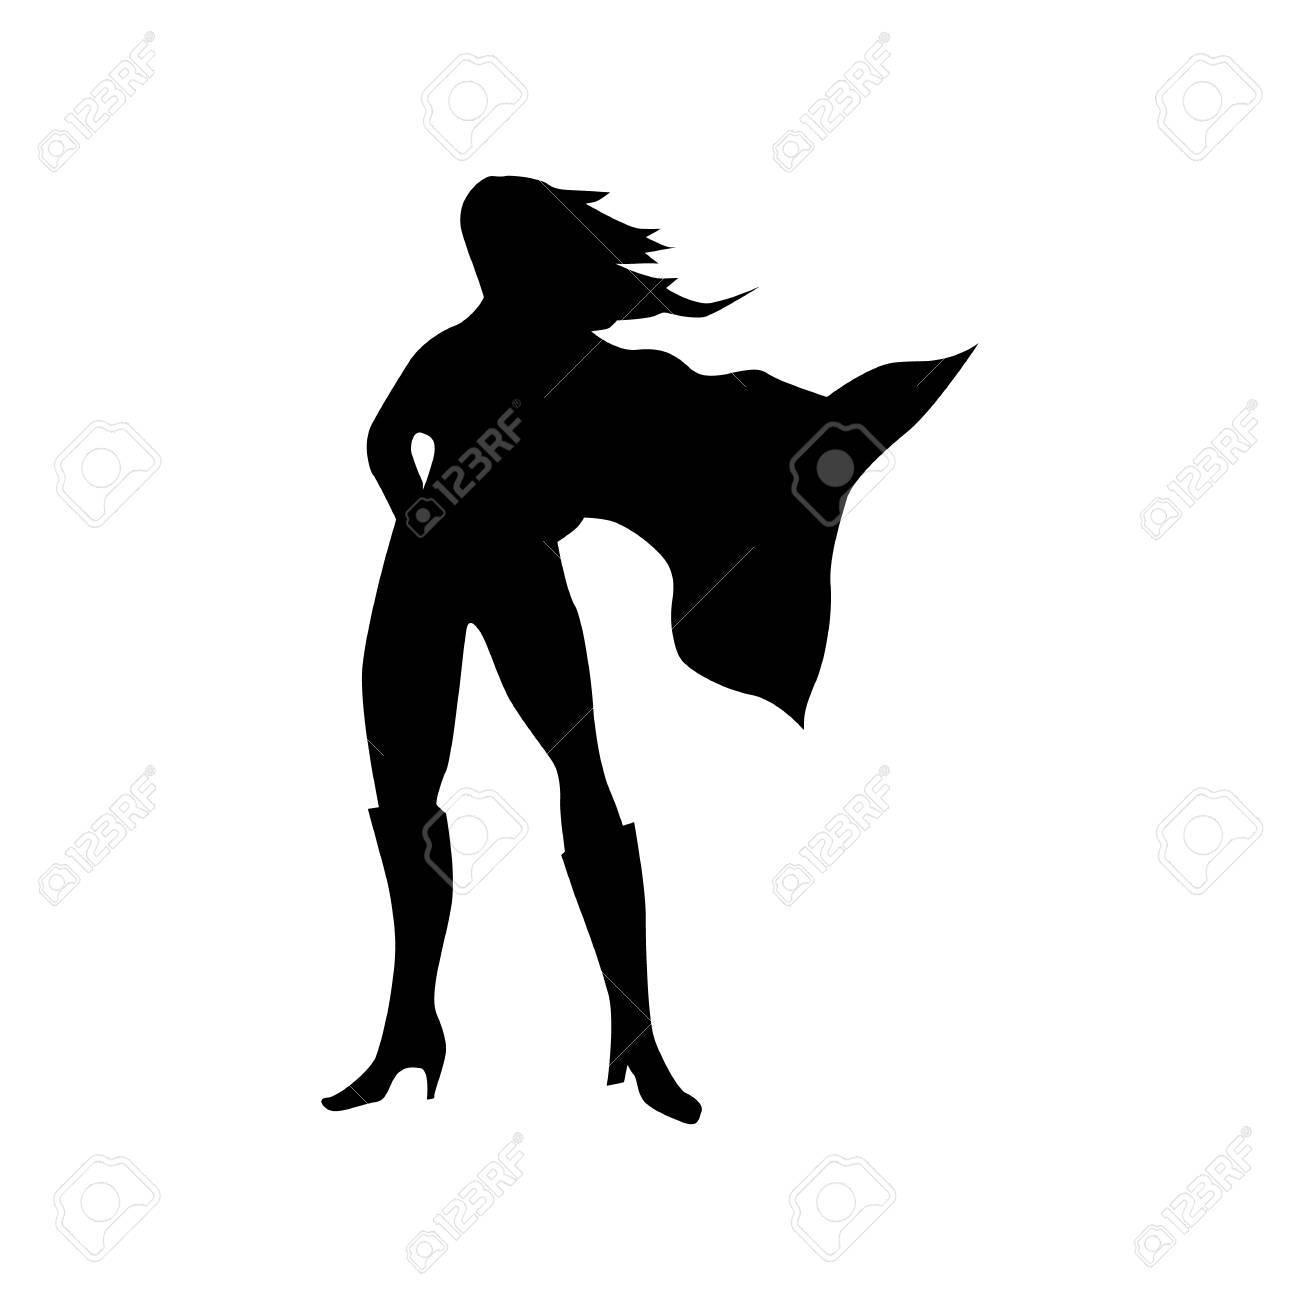 Superhero woman silhouette isolated on white background - 52008446